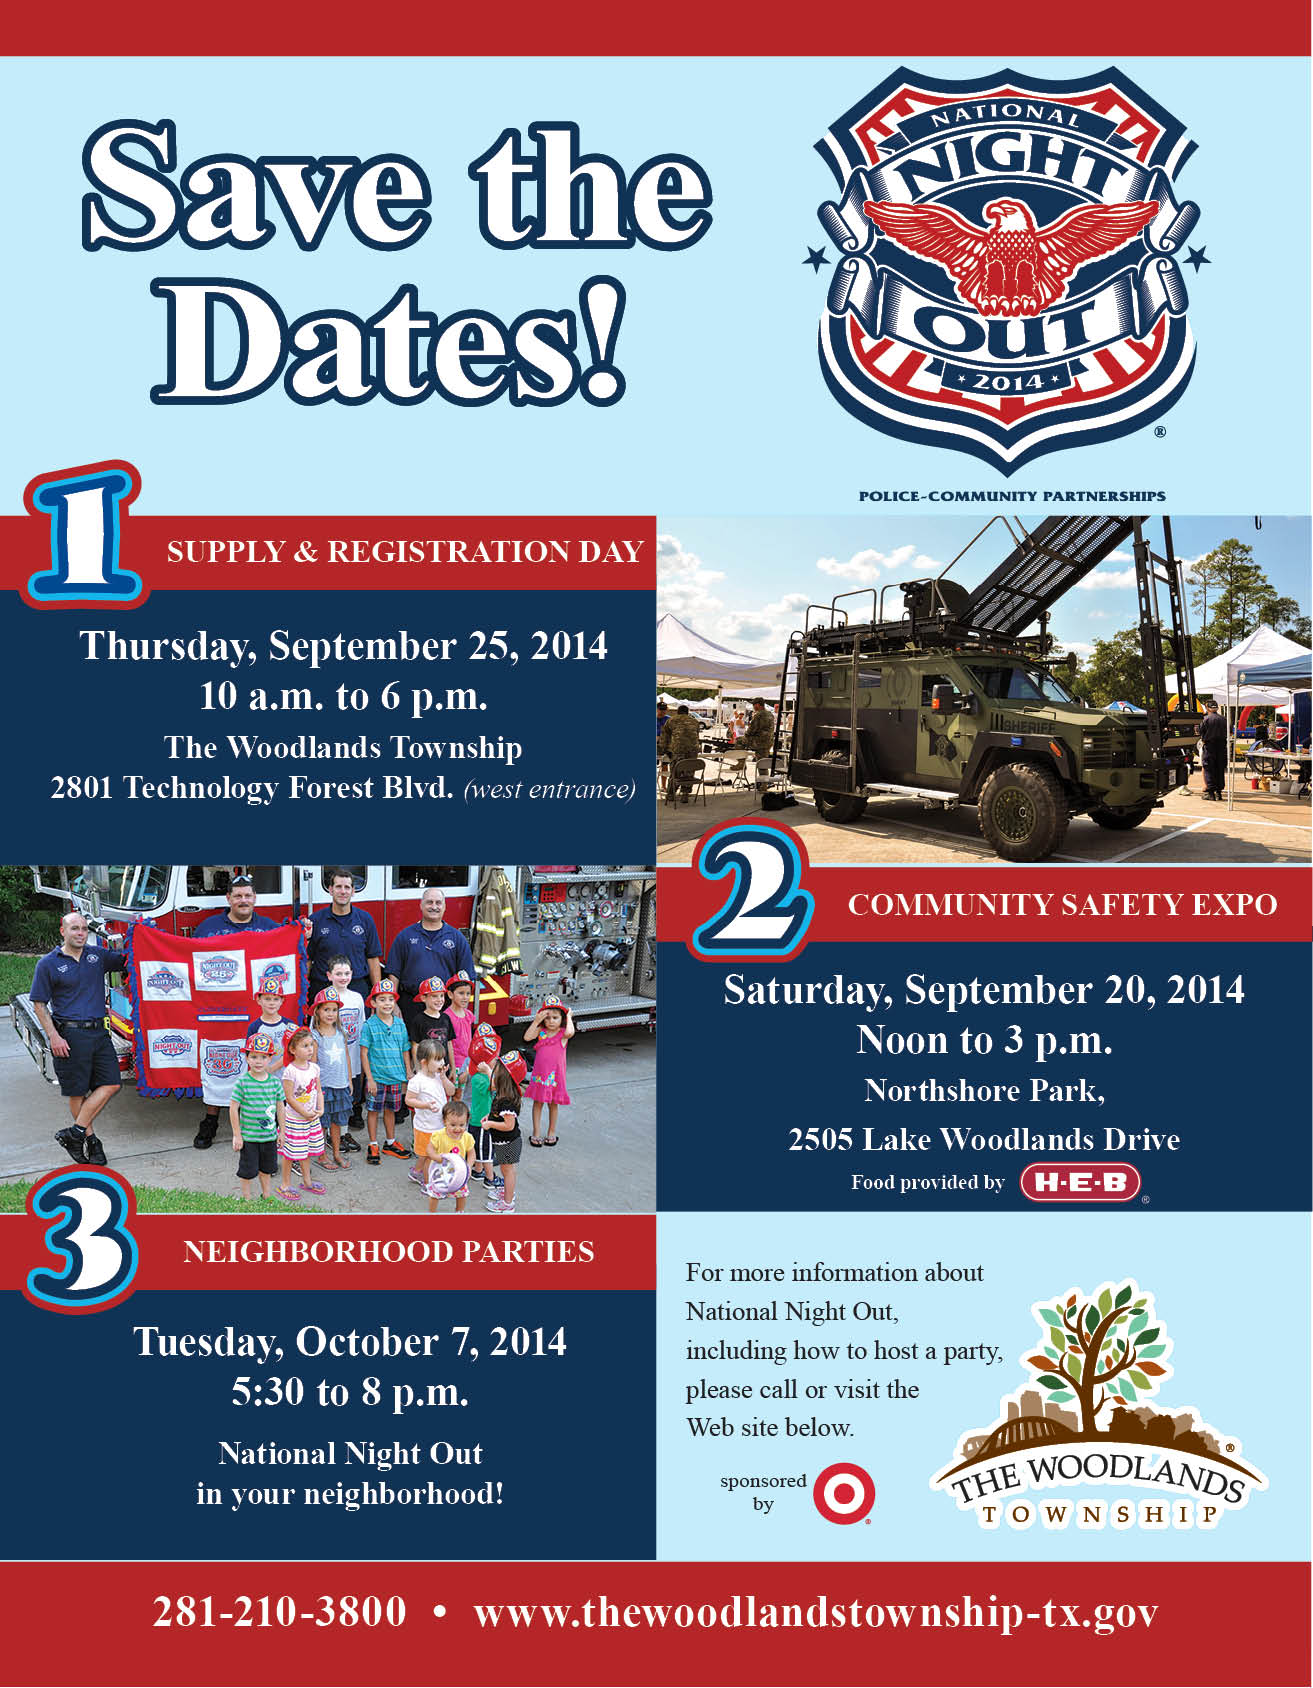 Save the Dates for National Night Out